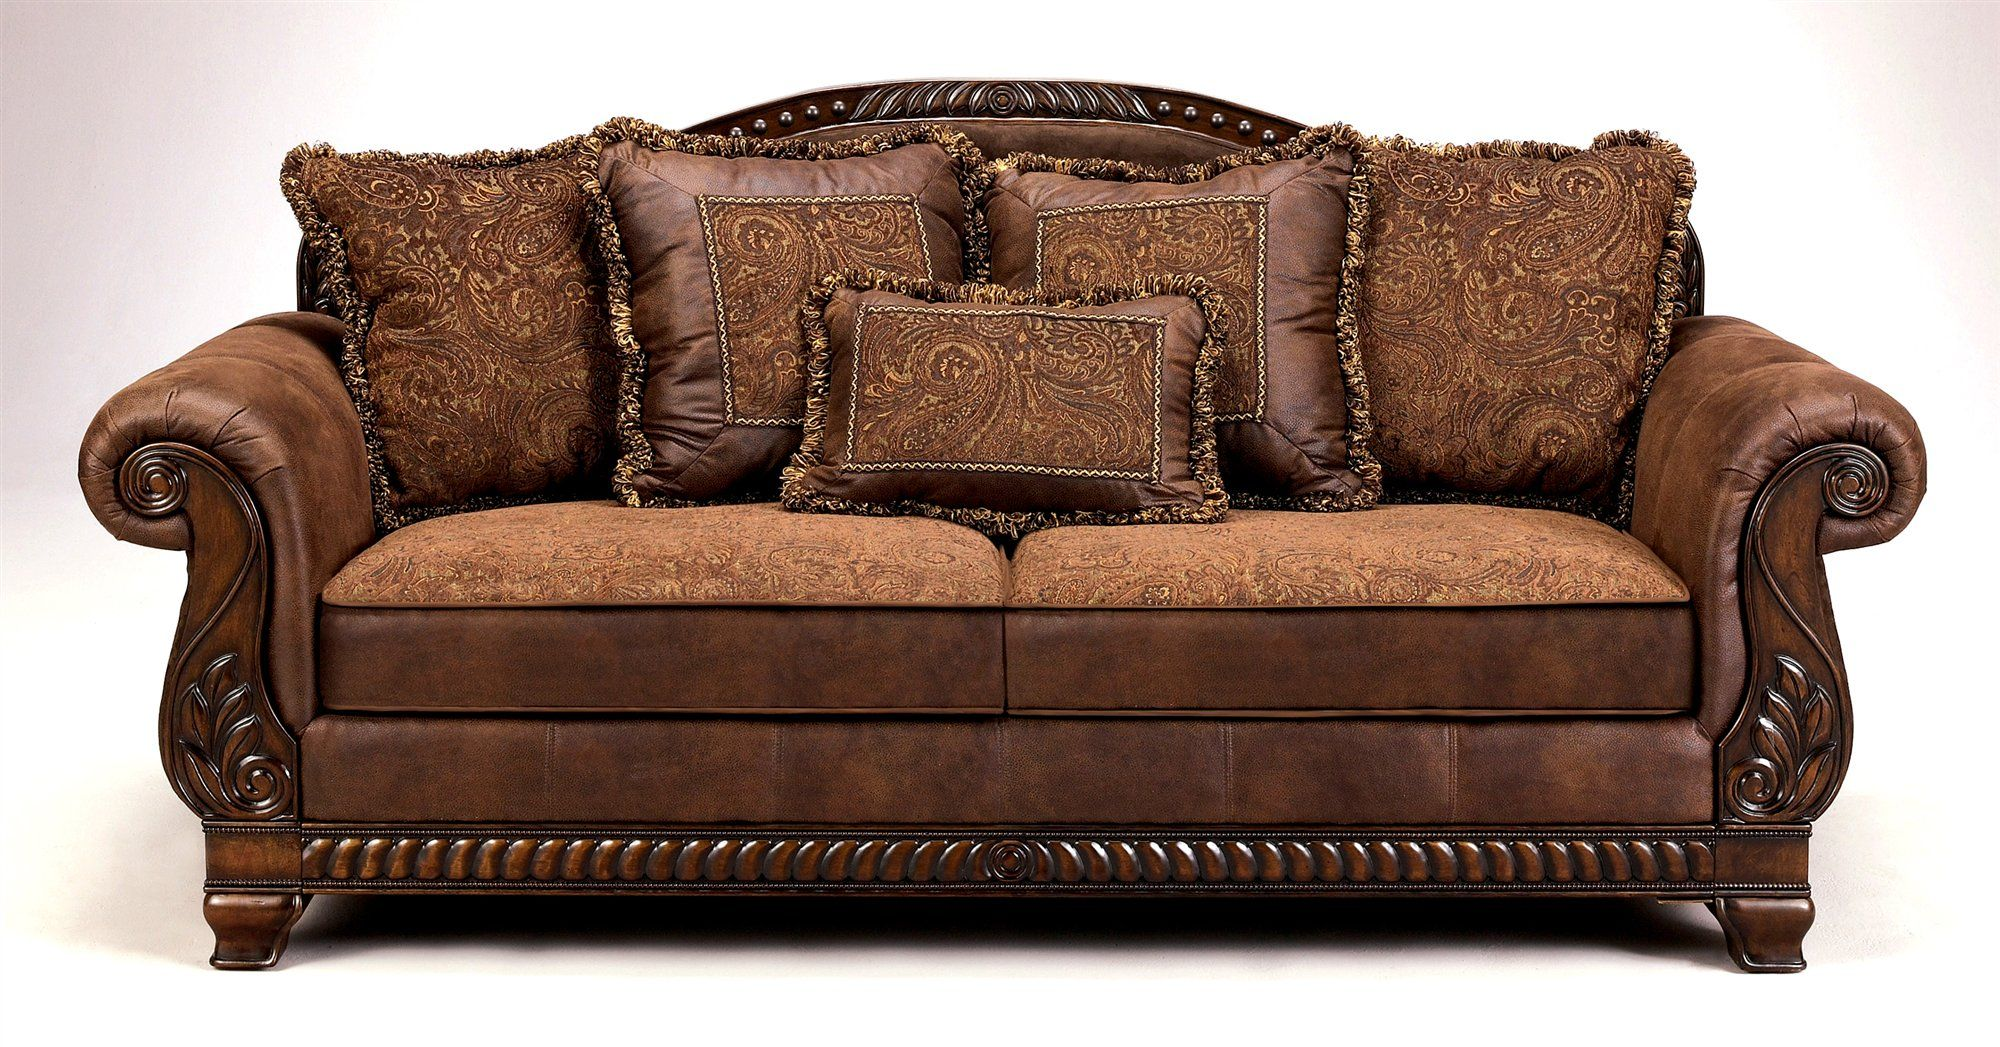 Buy Low Price ivgStores Furniture Faux Leather & Tapestry